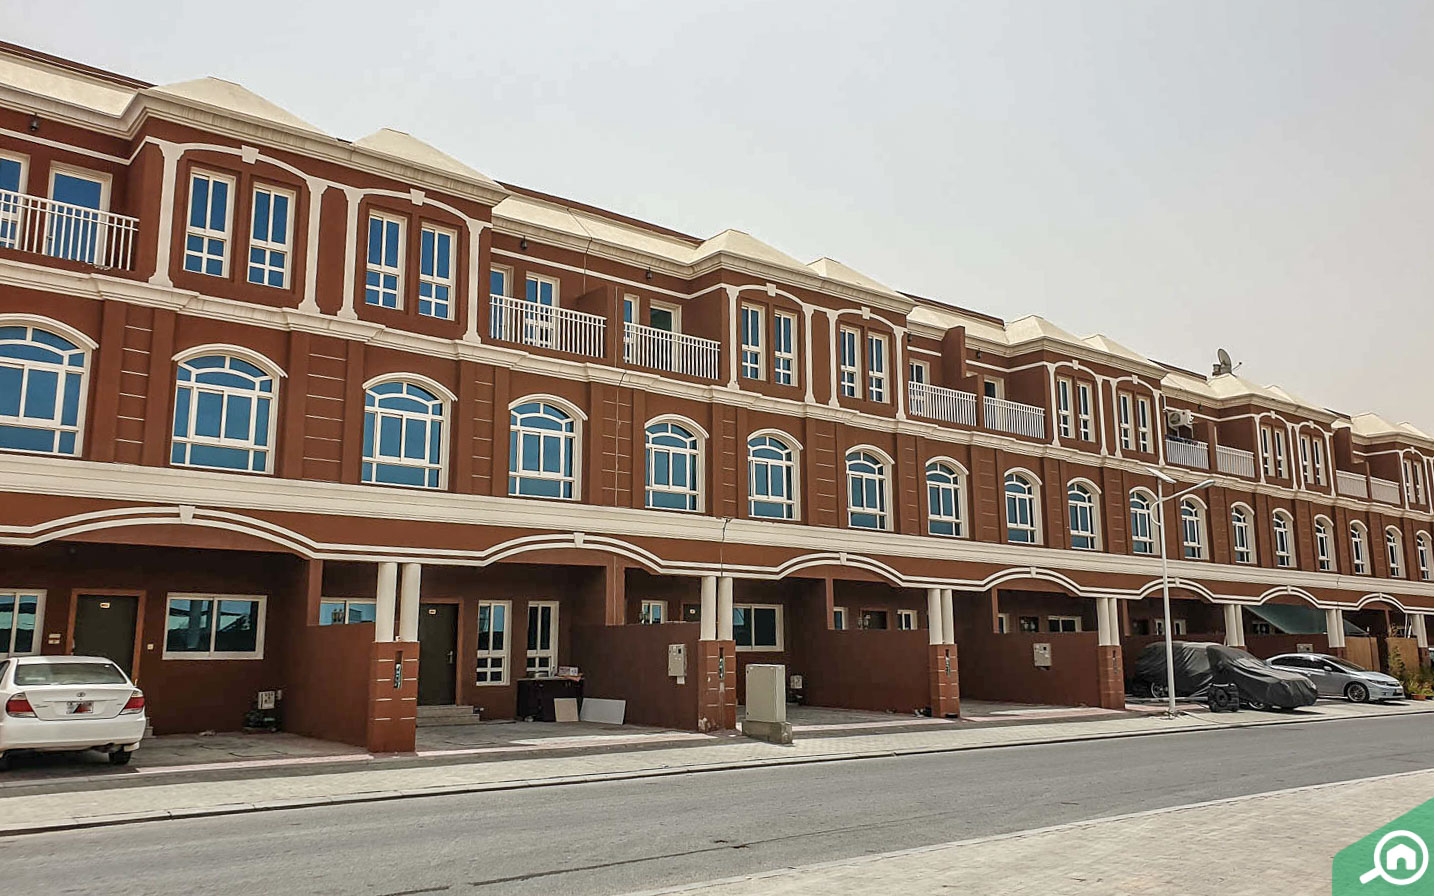 villas with parking spaces in ajman uptown